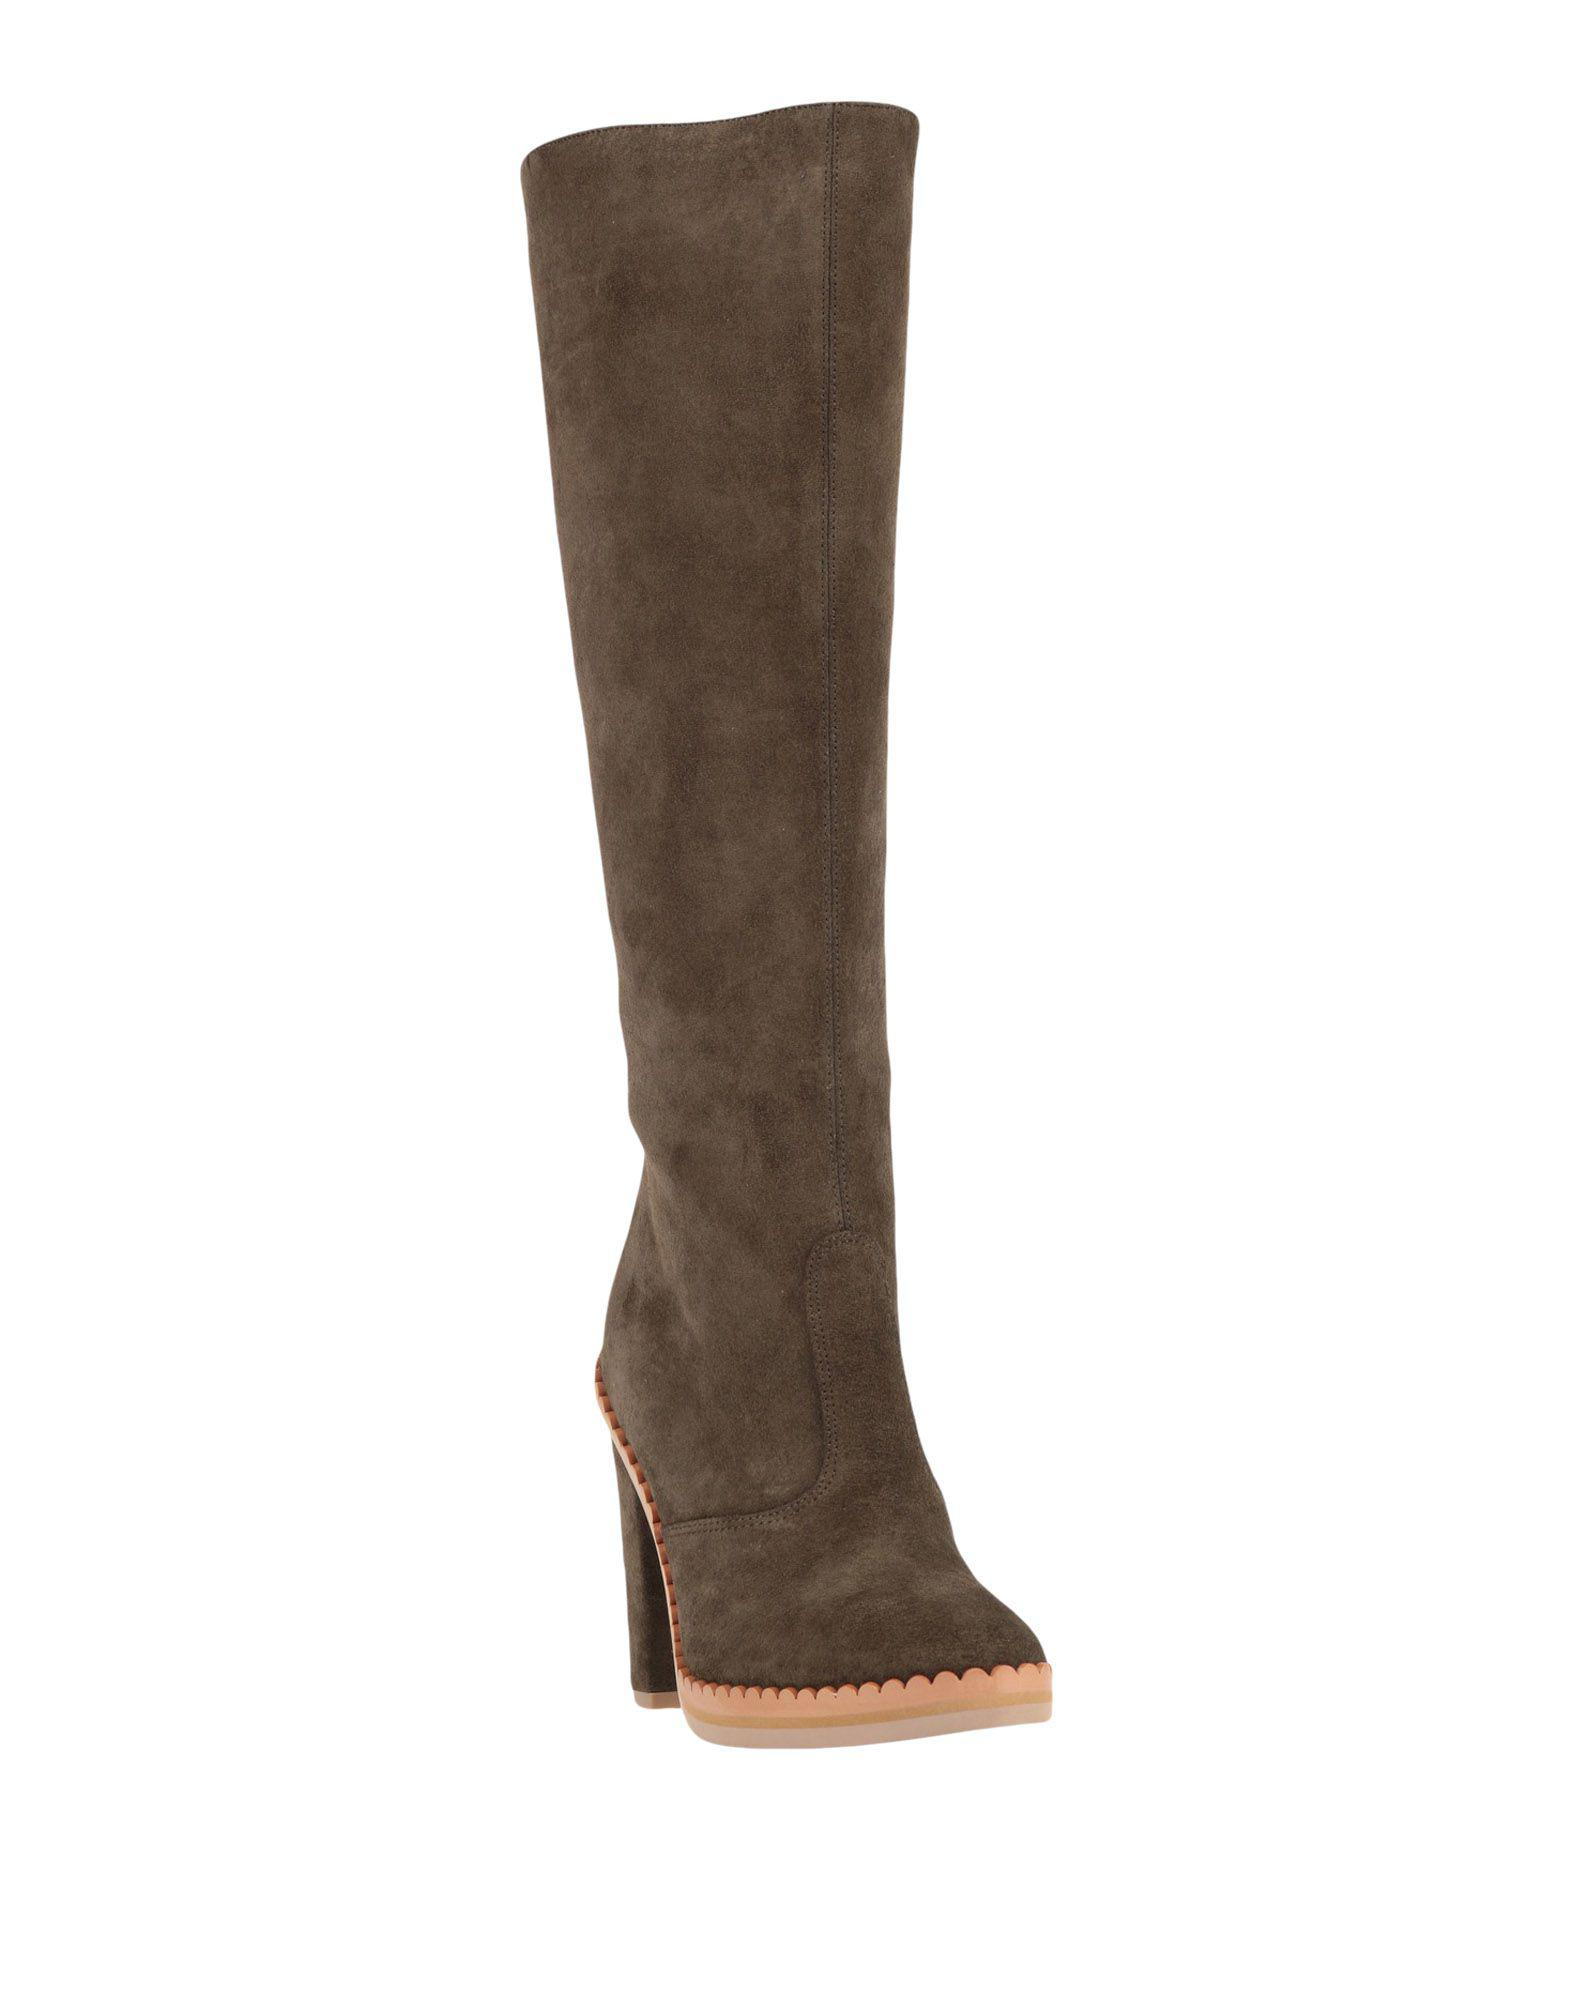 See By Chloé Suede Boots in Khaki (Brown)